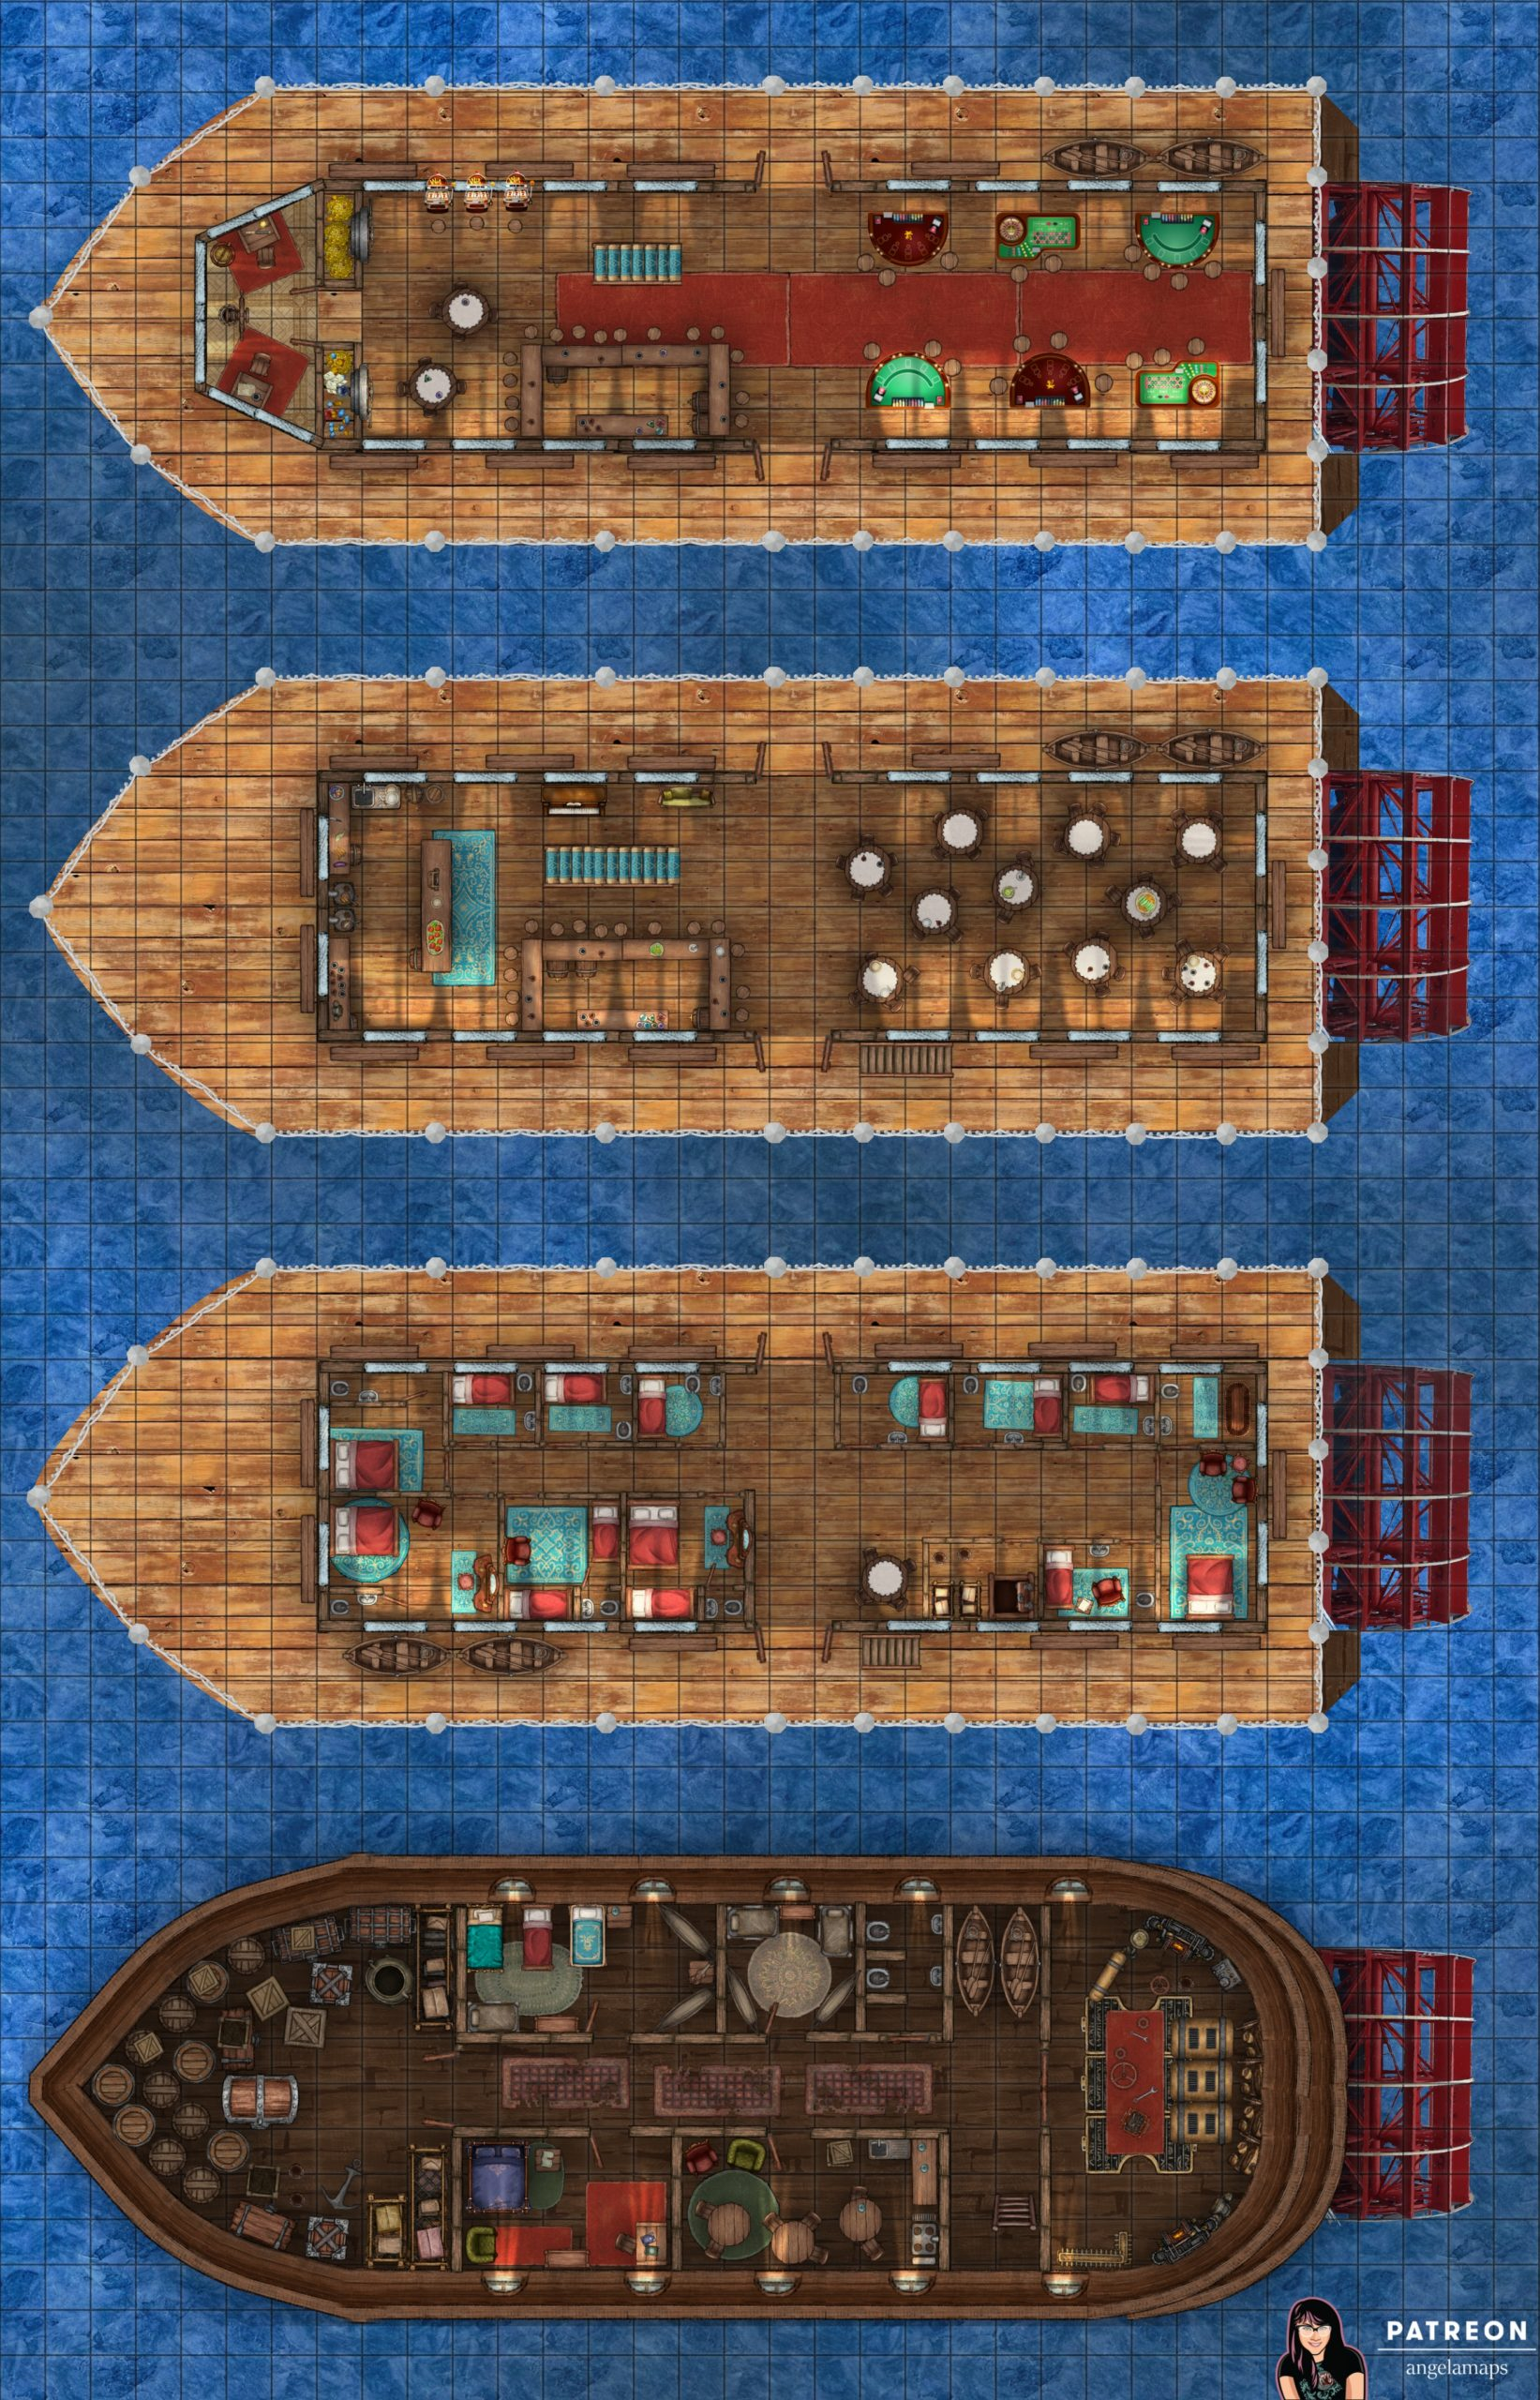 Riverboat and Casino battle map with for floors of boat. For D&D and Pathfinder or other TTRPGs